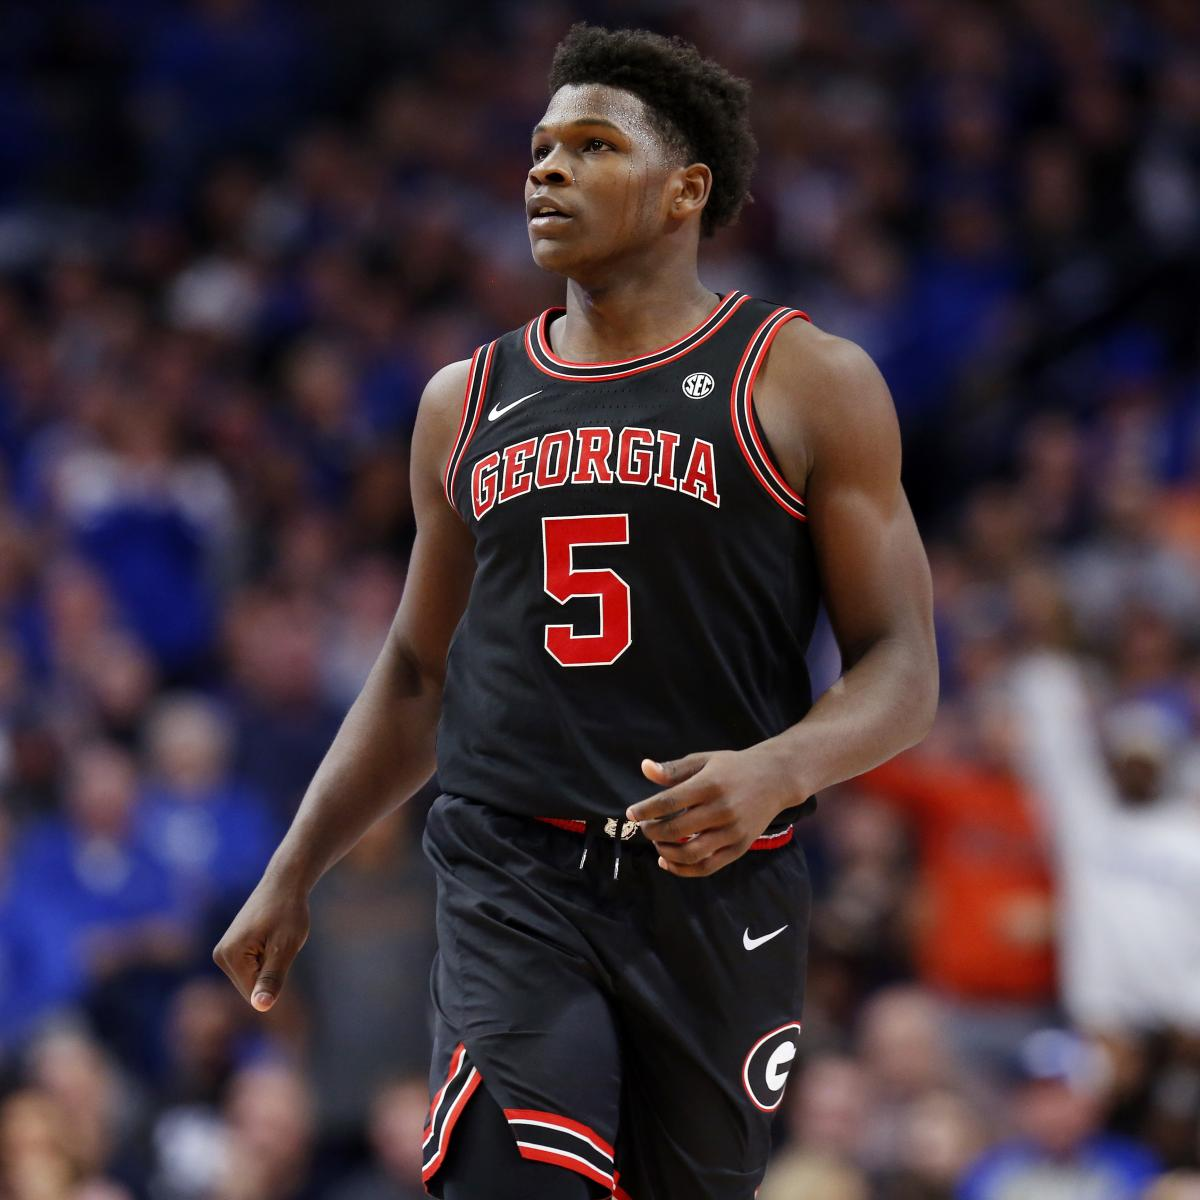 NBA Draft Order 2020: Fresh Mock Draft After Lottery Results